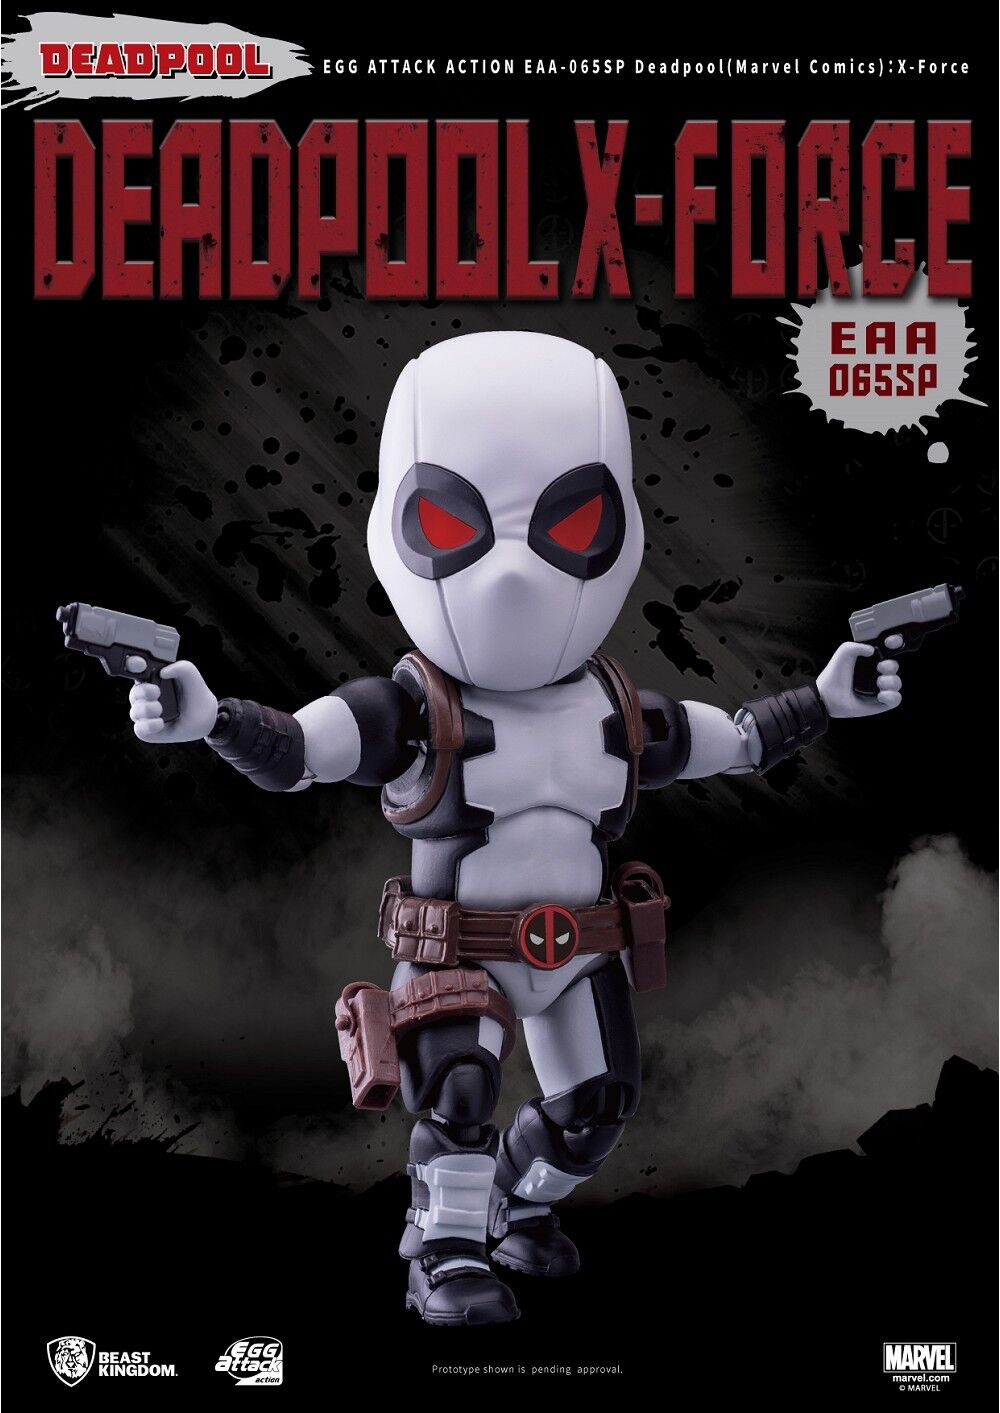 Acción de ataque de huevo Deadpool EAA-065SP (MARVEL COMICS) X-Force 6  figura